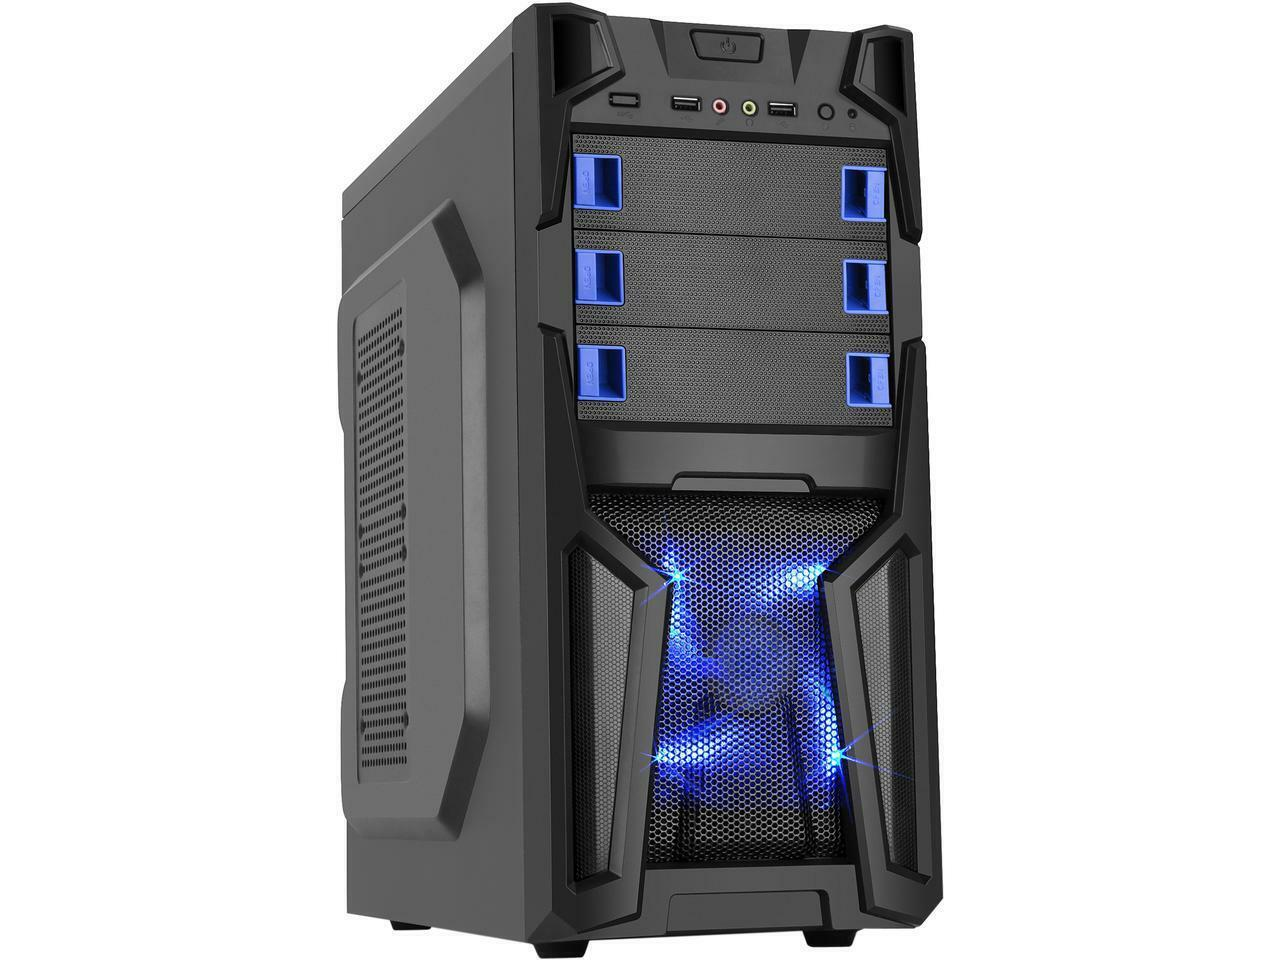 Custom Gaming Computer Ryzen 7 2700 4.1 GHZ X370 32GB RAM RTX 2060 700W BT SSD